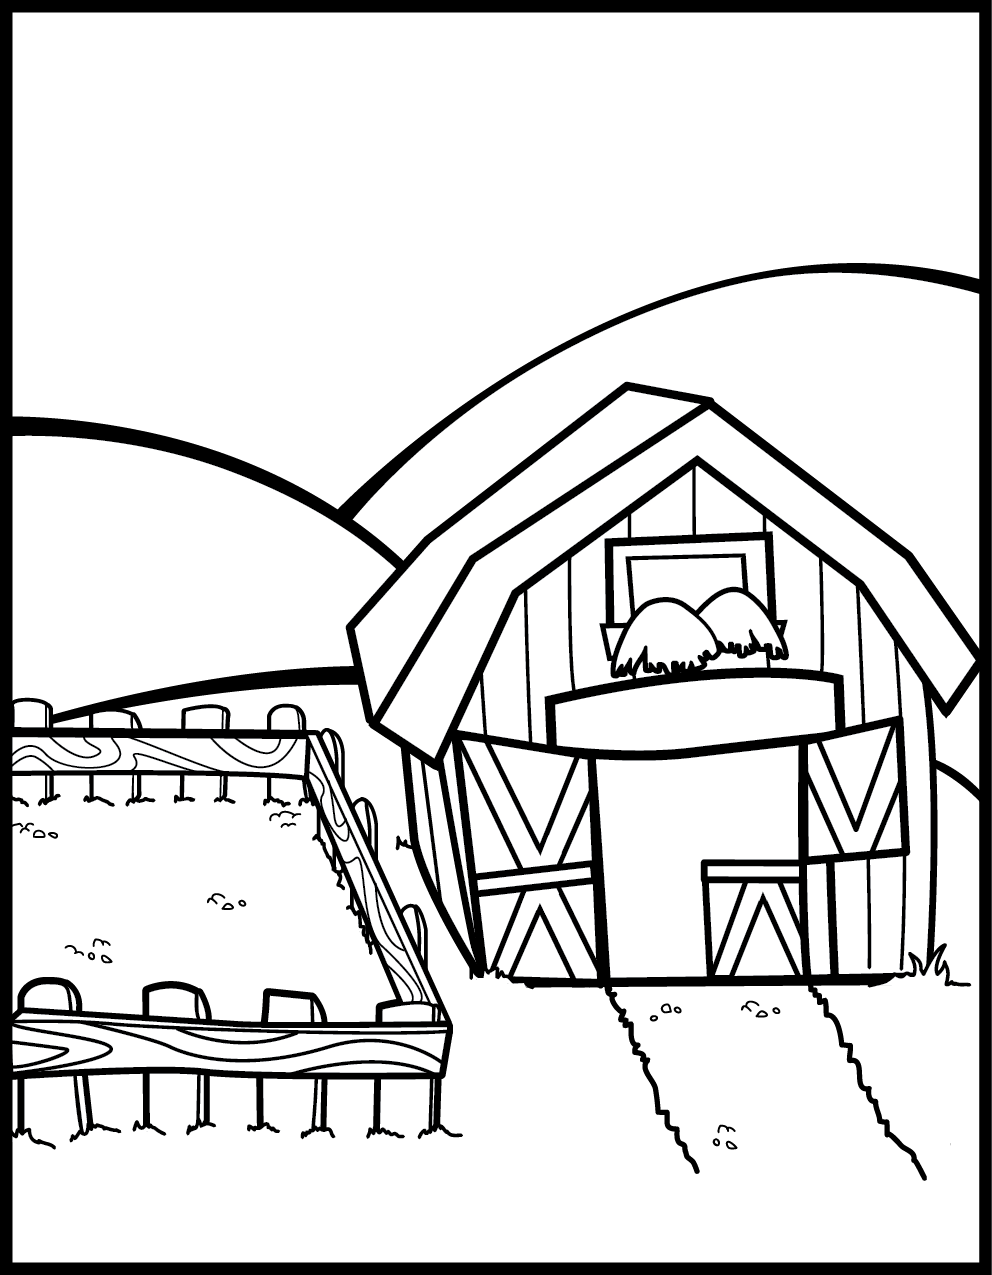 farm coloring pages preschool template with images coloring books preschool preschool pages farm coloring